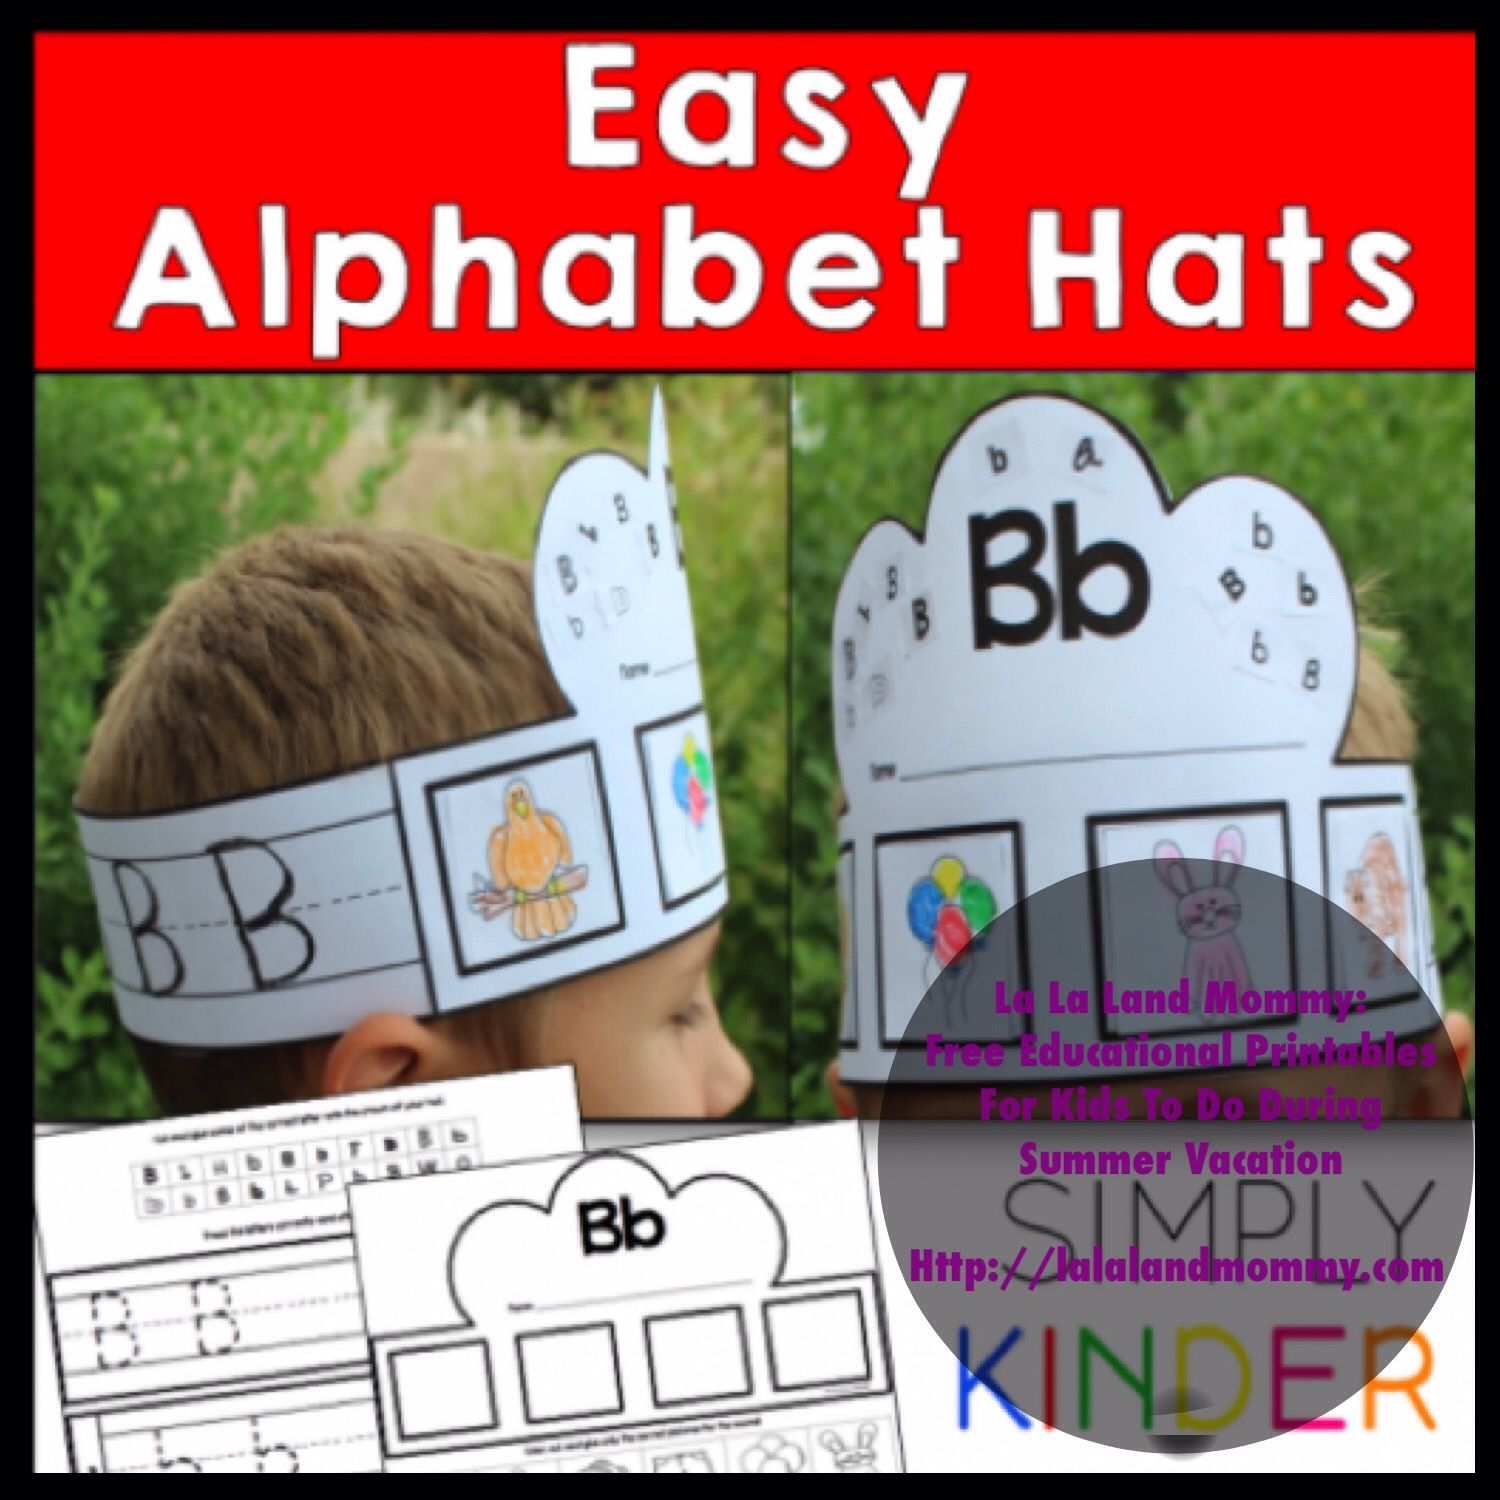 Free Educational Printables For Kids To Do During Summer Vacation ...